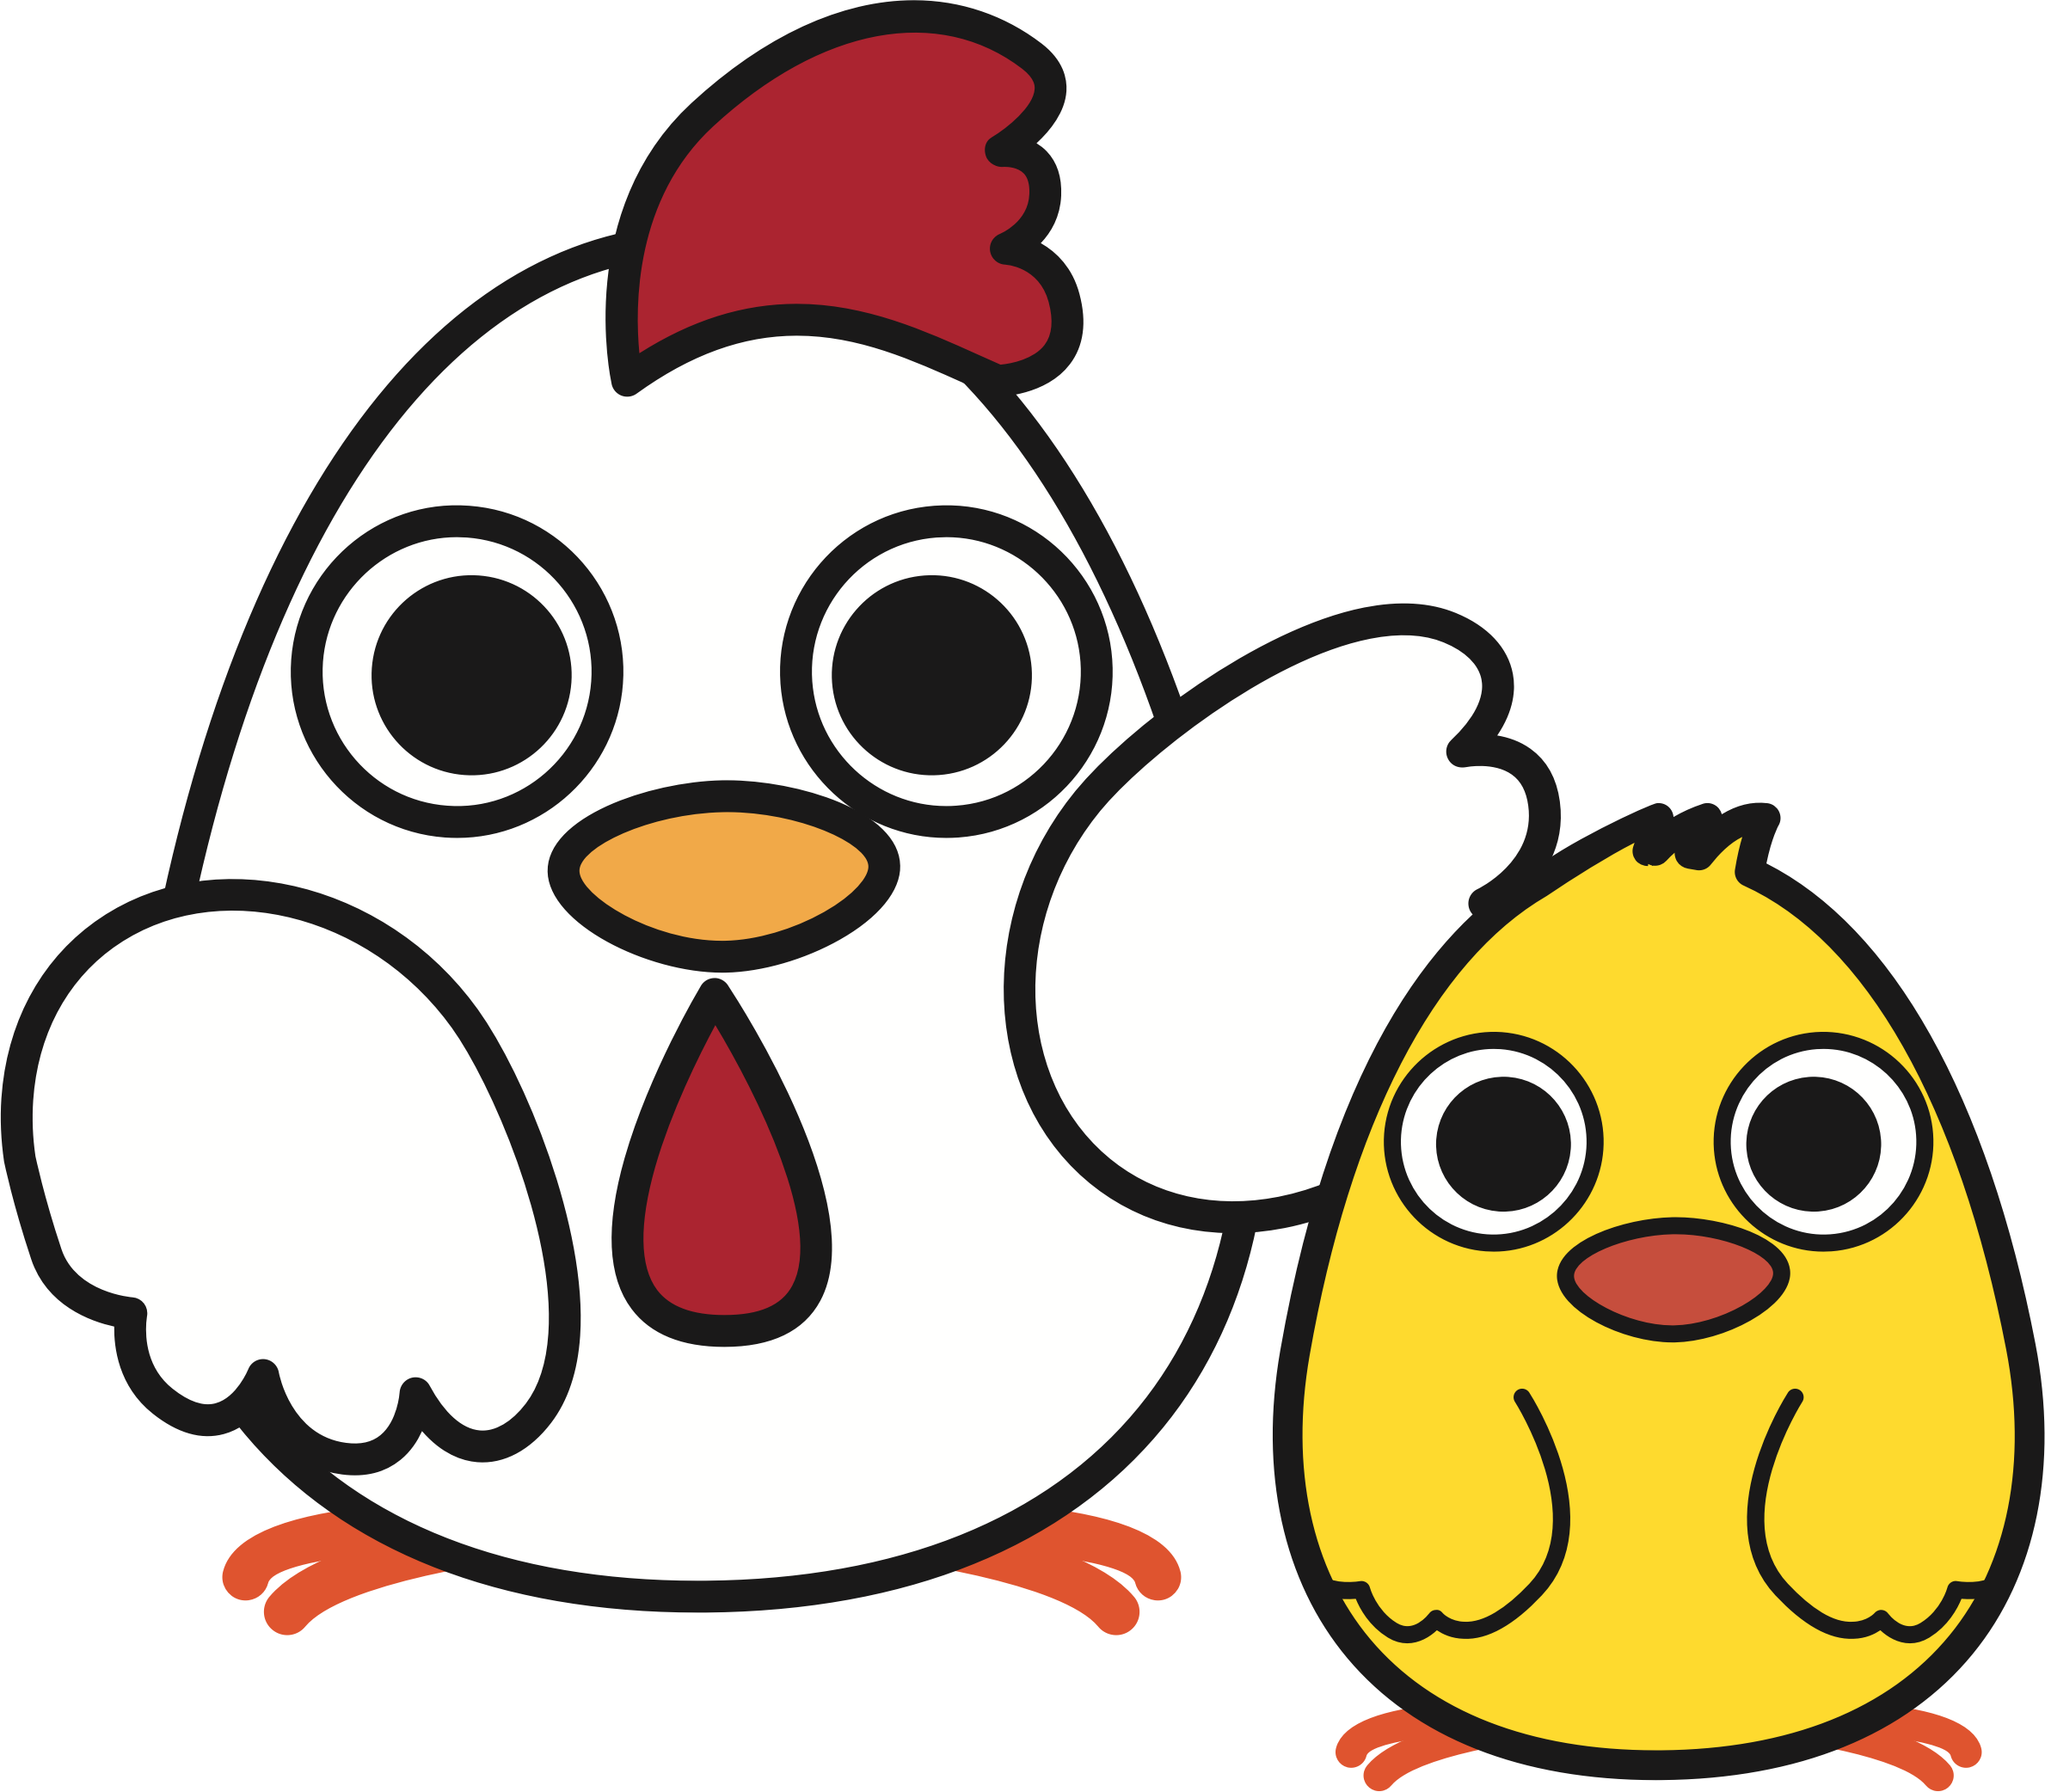 png free With image png. Big clipart chicken chick.